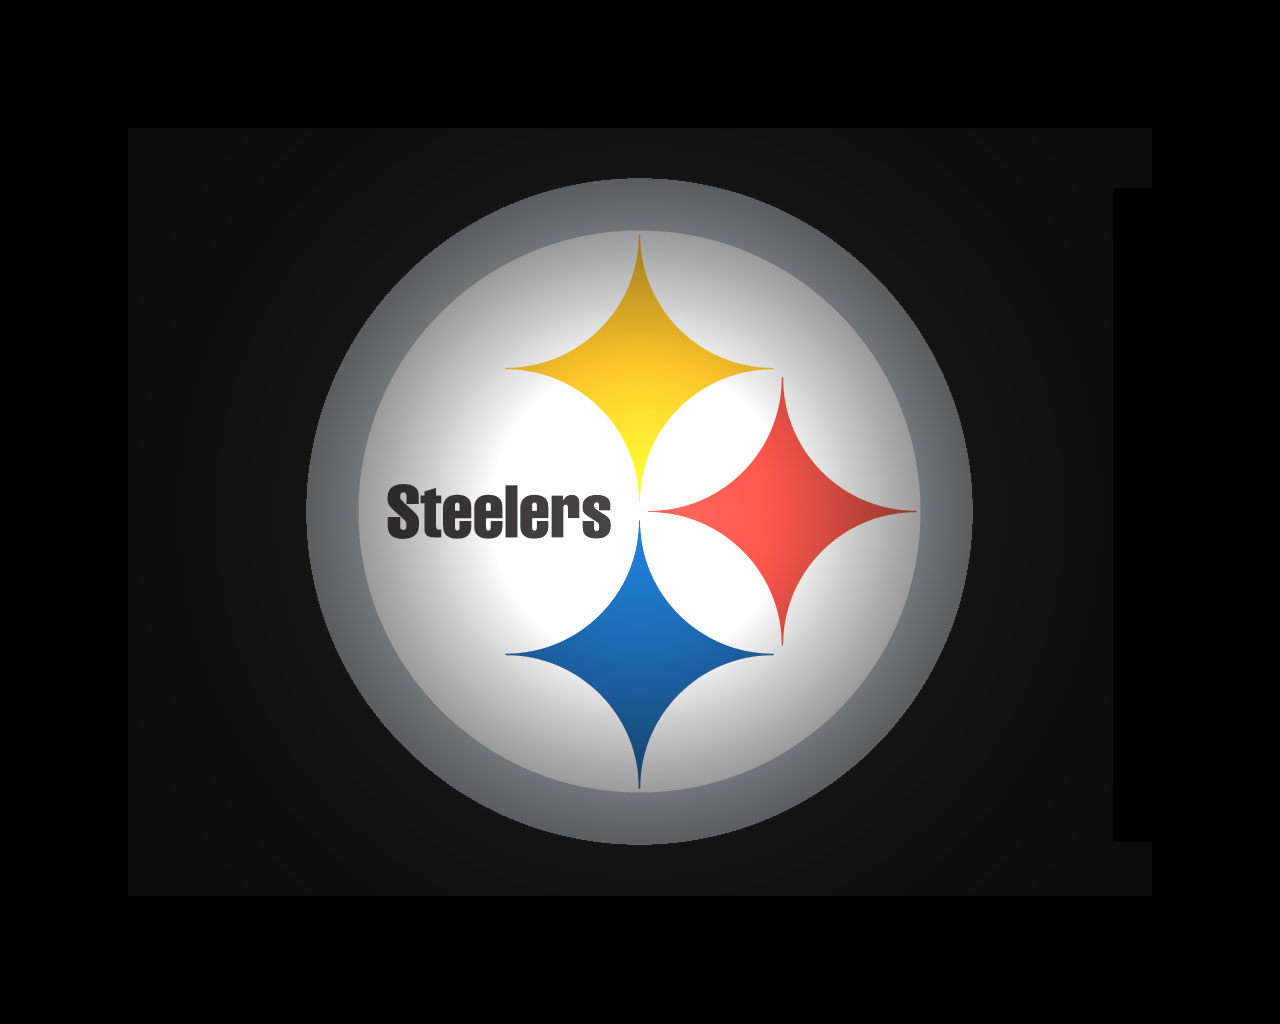 Steelers wallpaper wallpaper Pittsburgh Steelers wallpapers 1280x1024